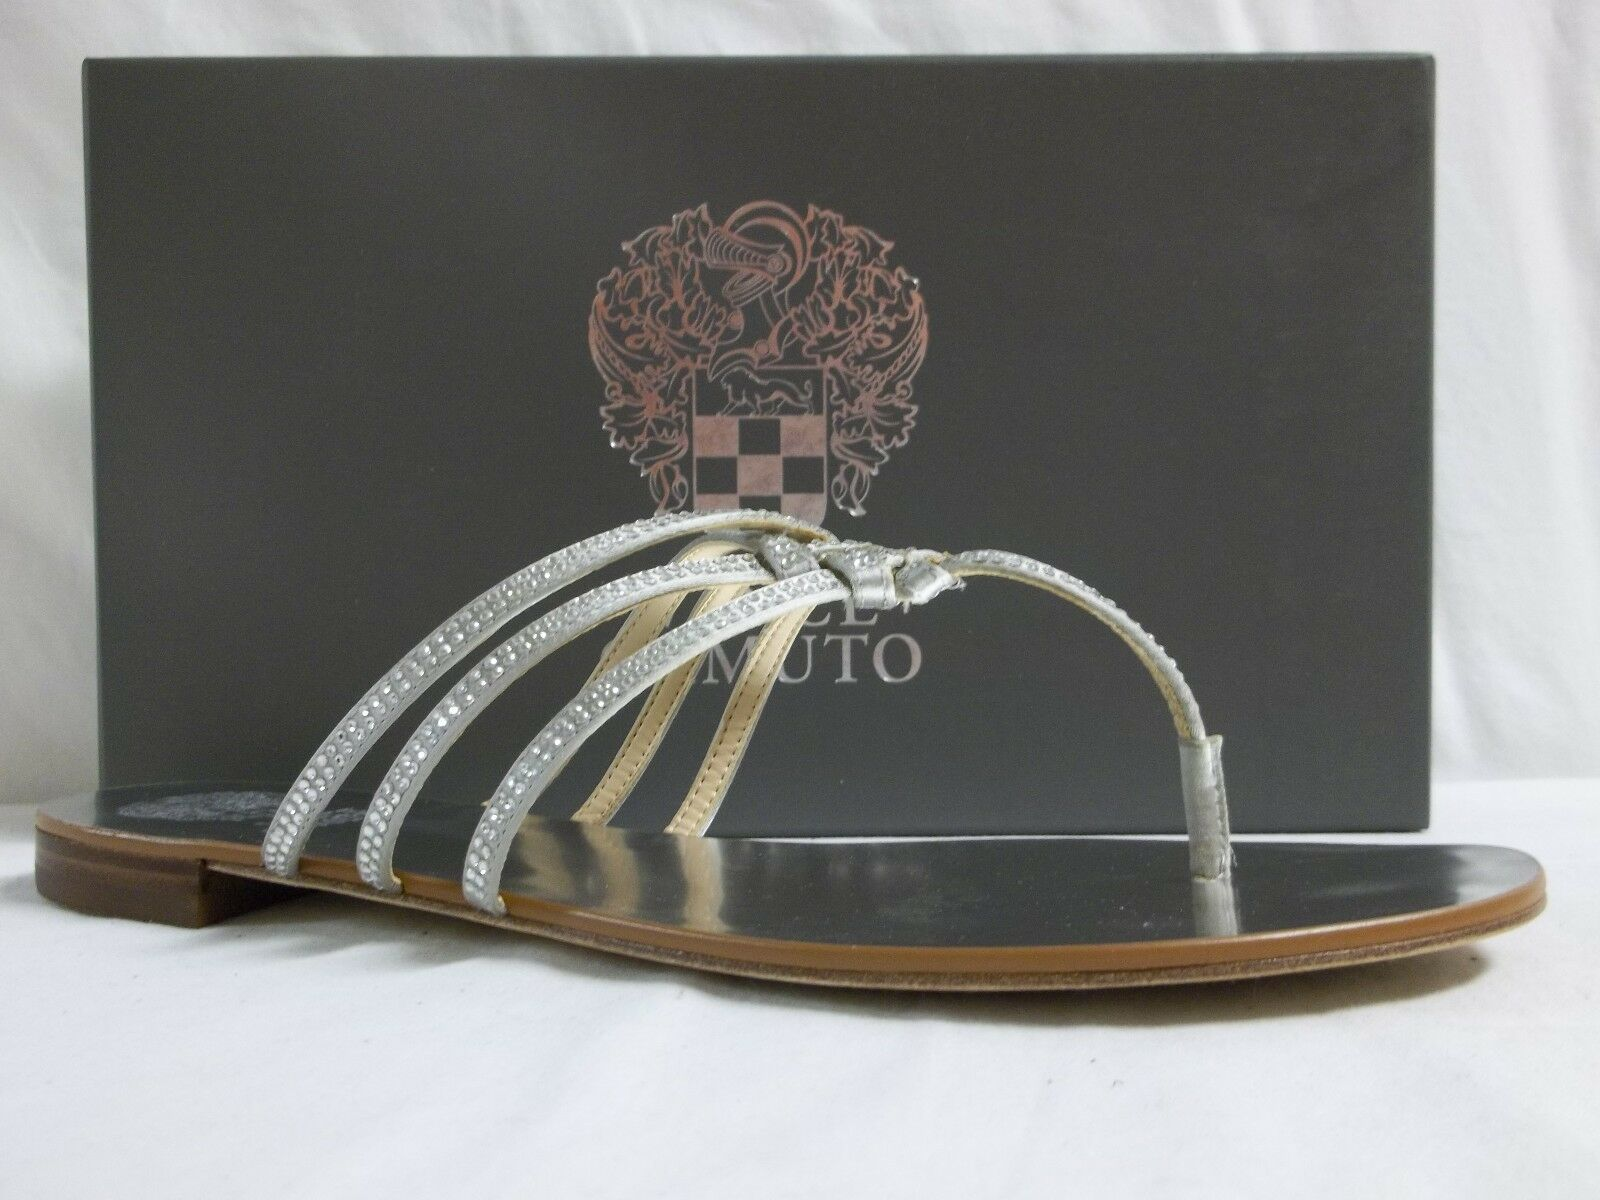 Vince Camuto Size 8 M Mariella Silver Satin Flip Flops New Womens Shoes